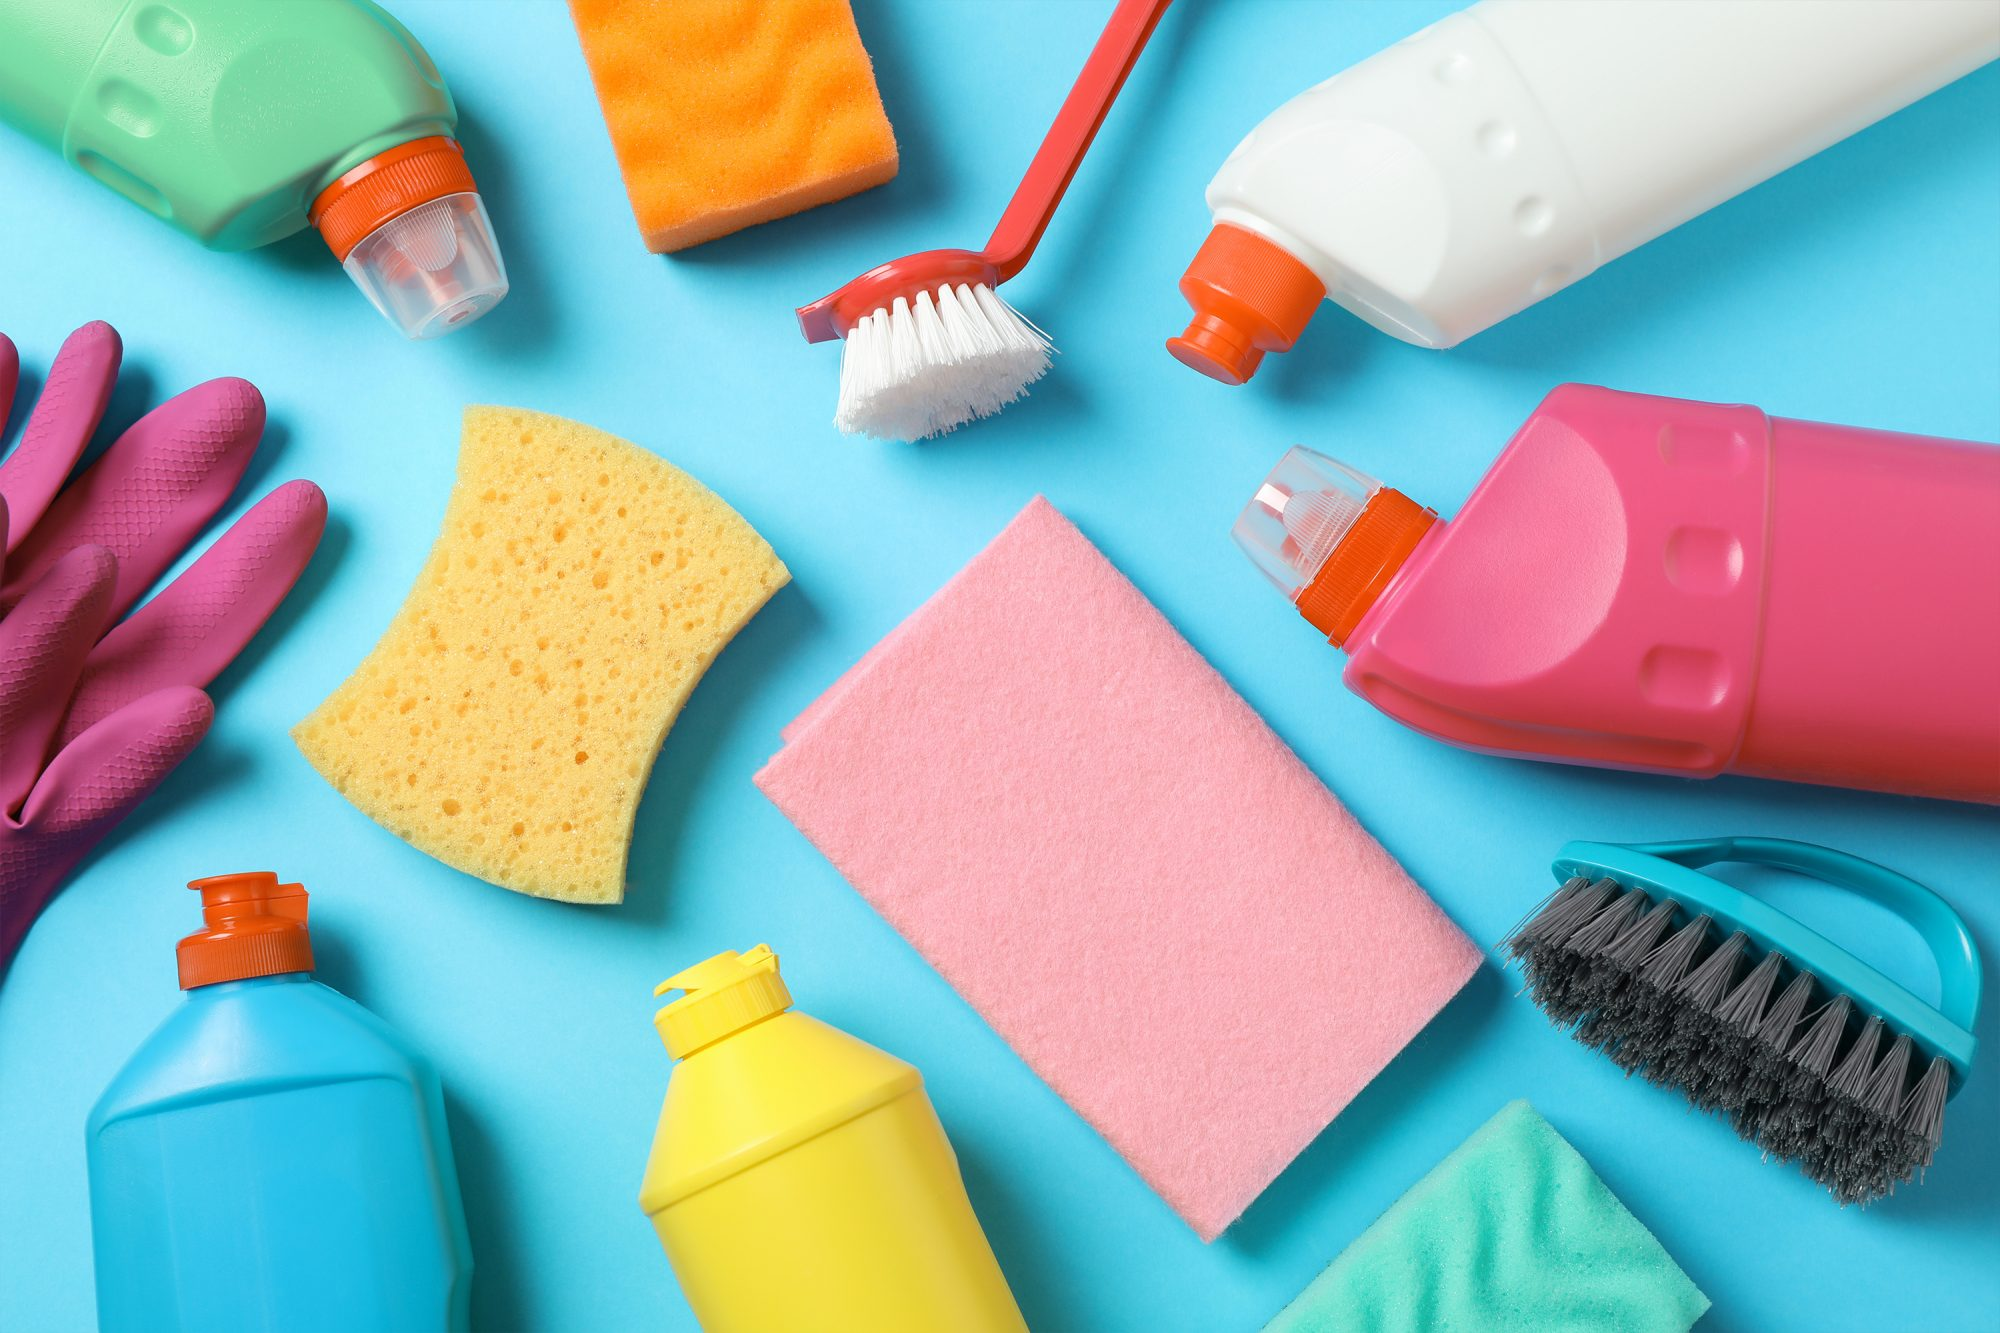 Clean supplies, sponges and brushes